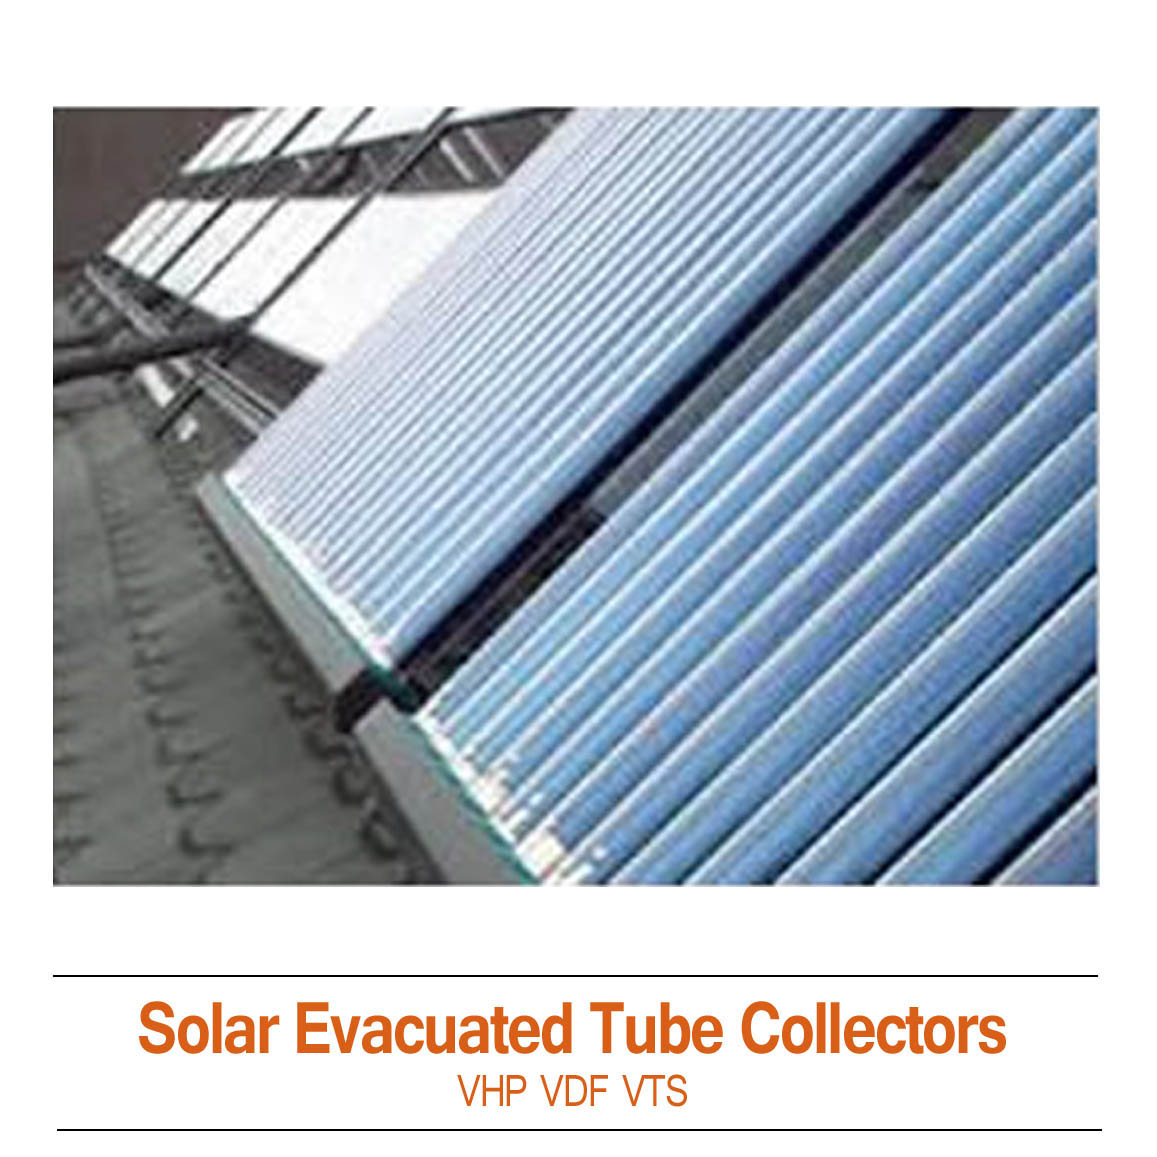 ThermoPower Heat Pipe Evacuated Tube Solar Collectors